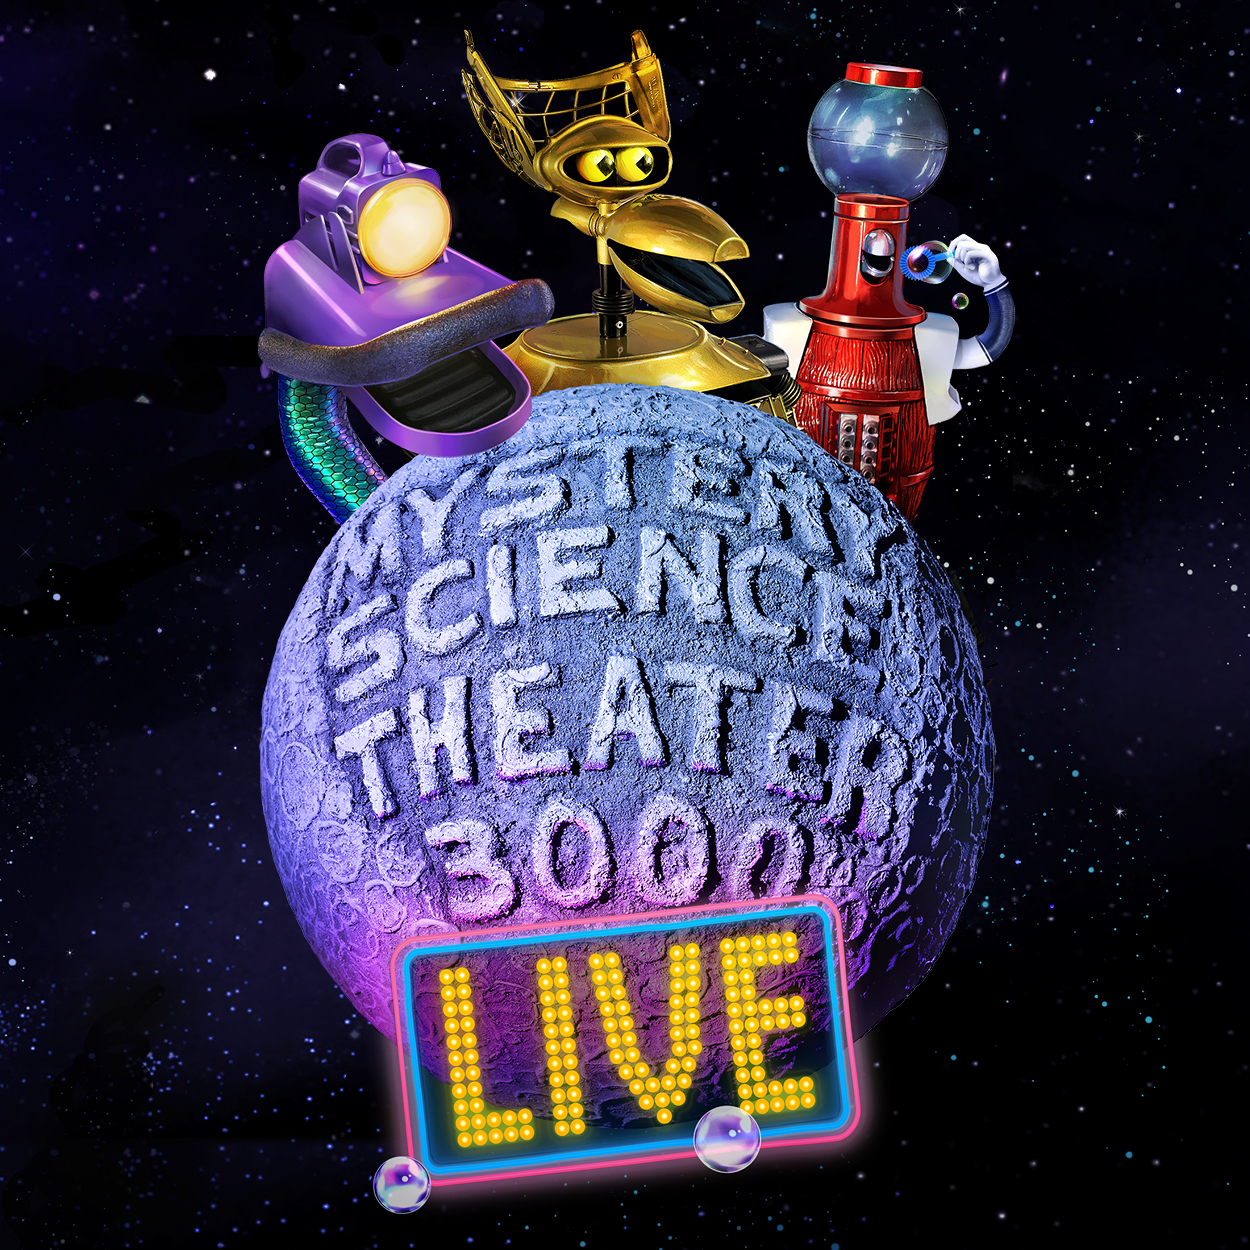 Mystery Science Theater 3000 Live: Time Bubble Tour